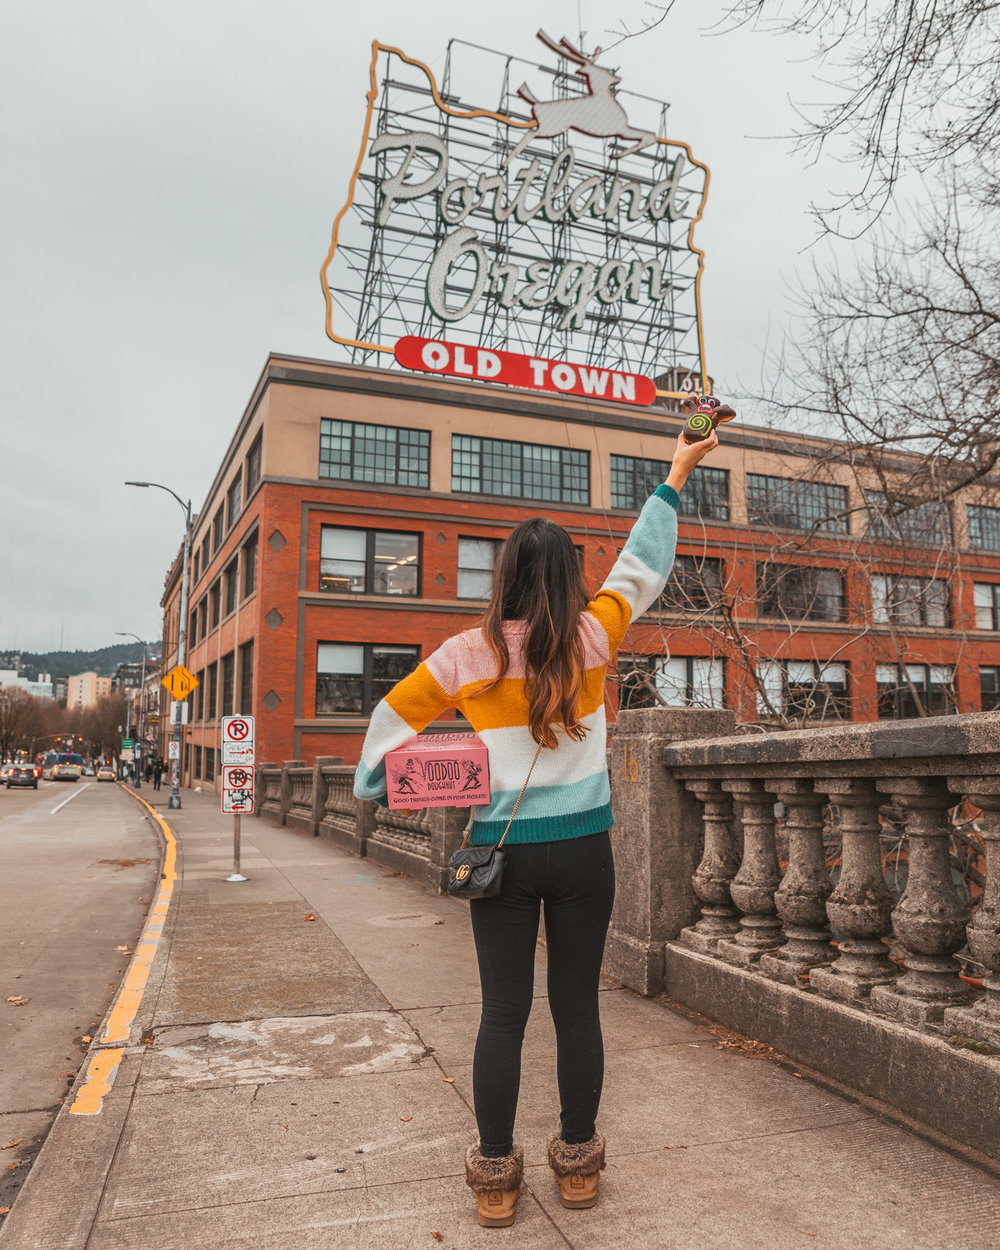 The famous Portland sign with Voodoo Doughnuts // Checking In: The Radisson Red in Downtown Portland, Oregon #readysetjetset #pdx #portland #blogpost #travelguide